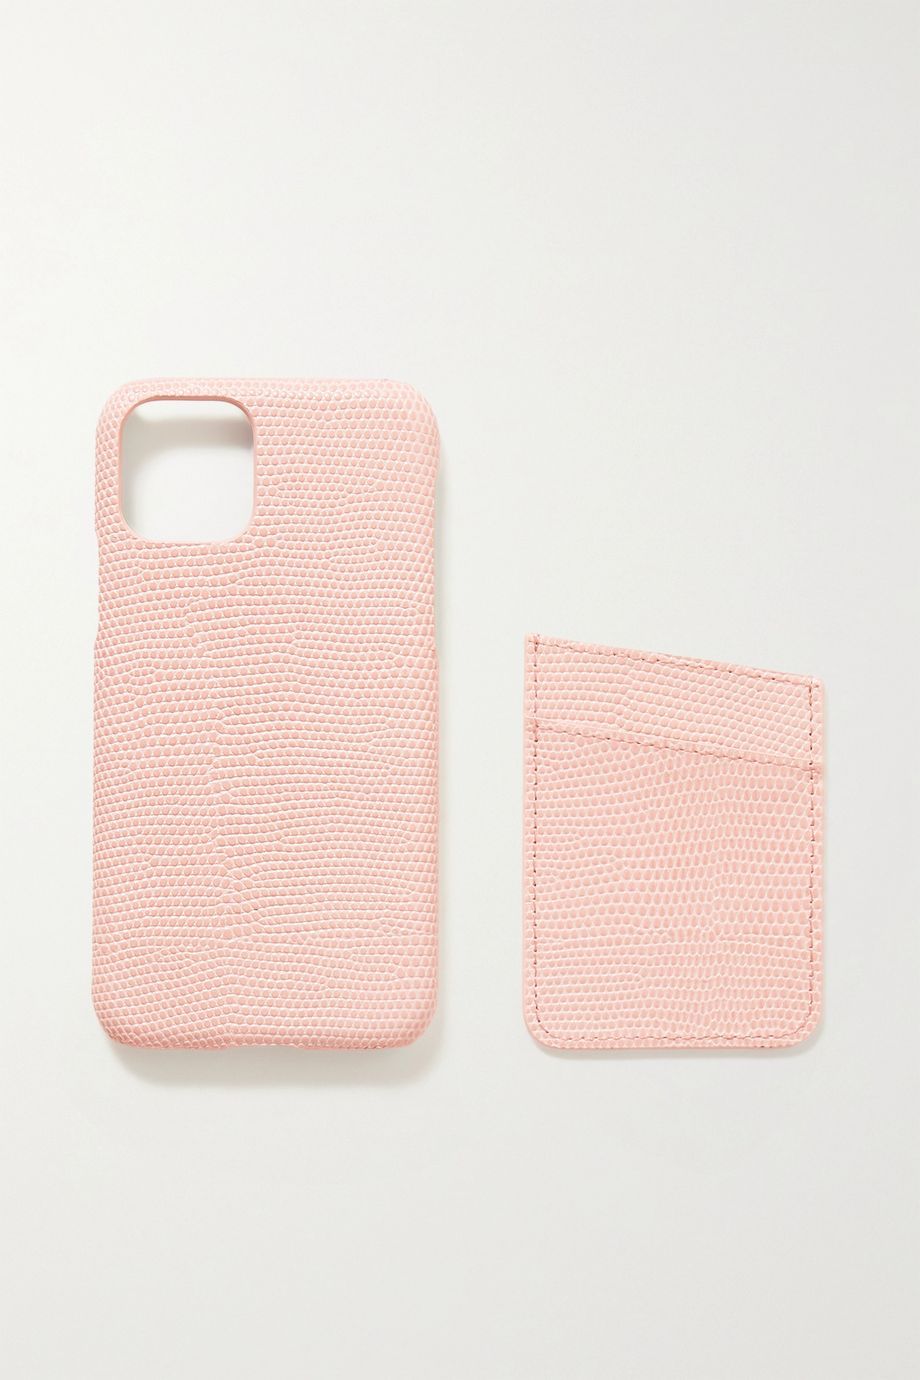 The Case Factory Lizard-effect leather iPhone 11 Pro case and cardholder set